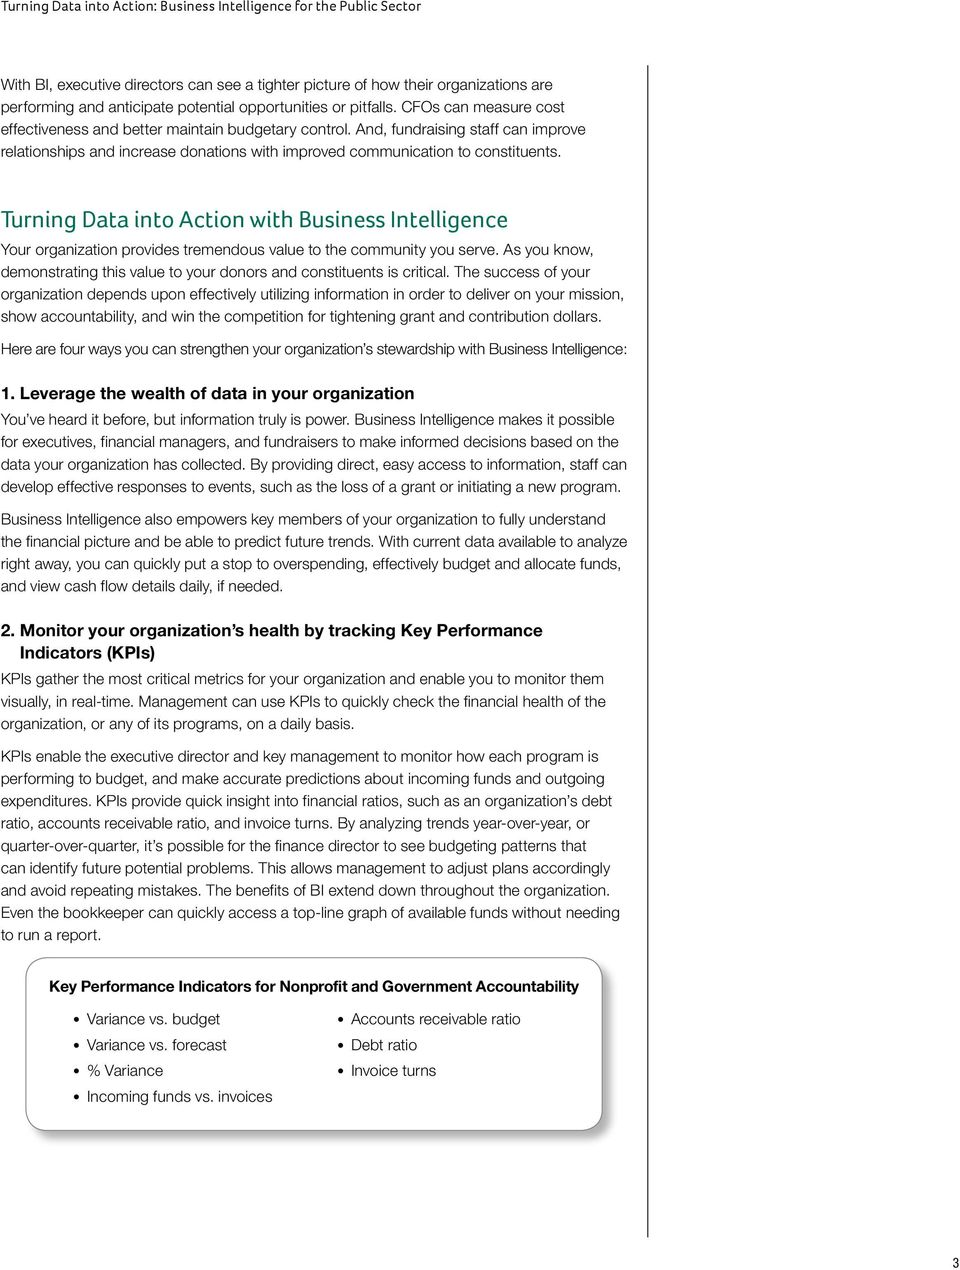 Turning Data into Action with Business Intelligence Your organization provides tremendous value to the community you serve.